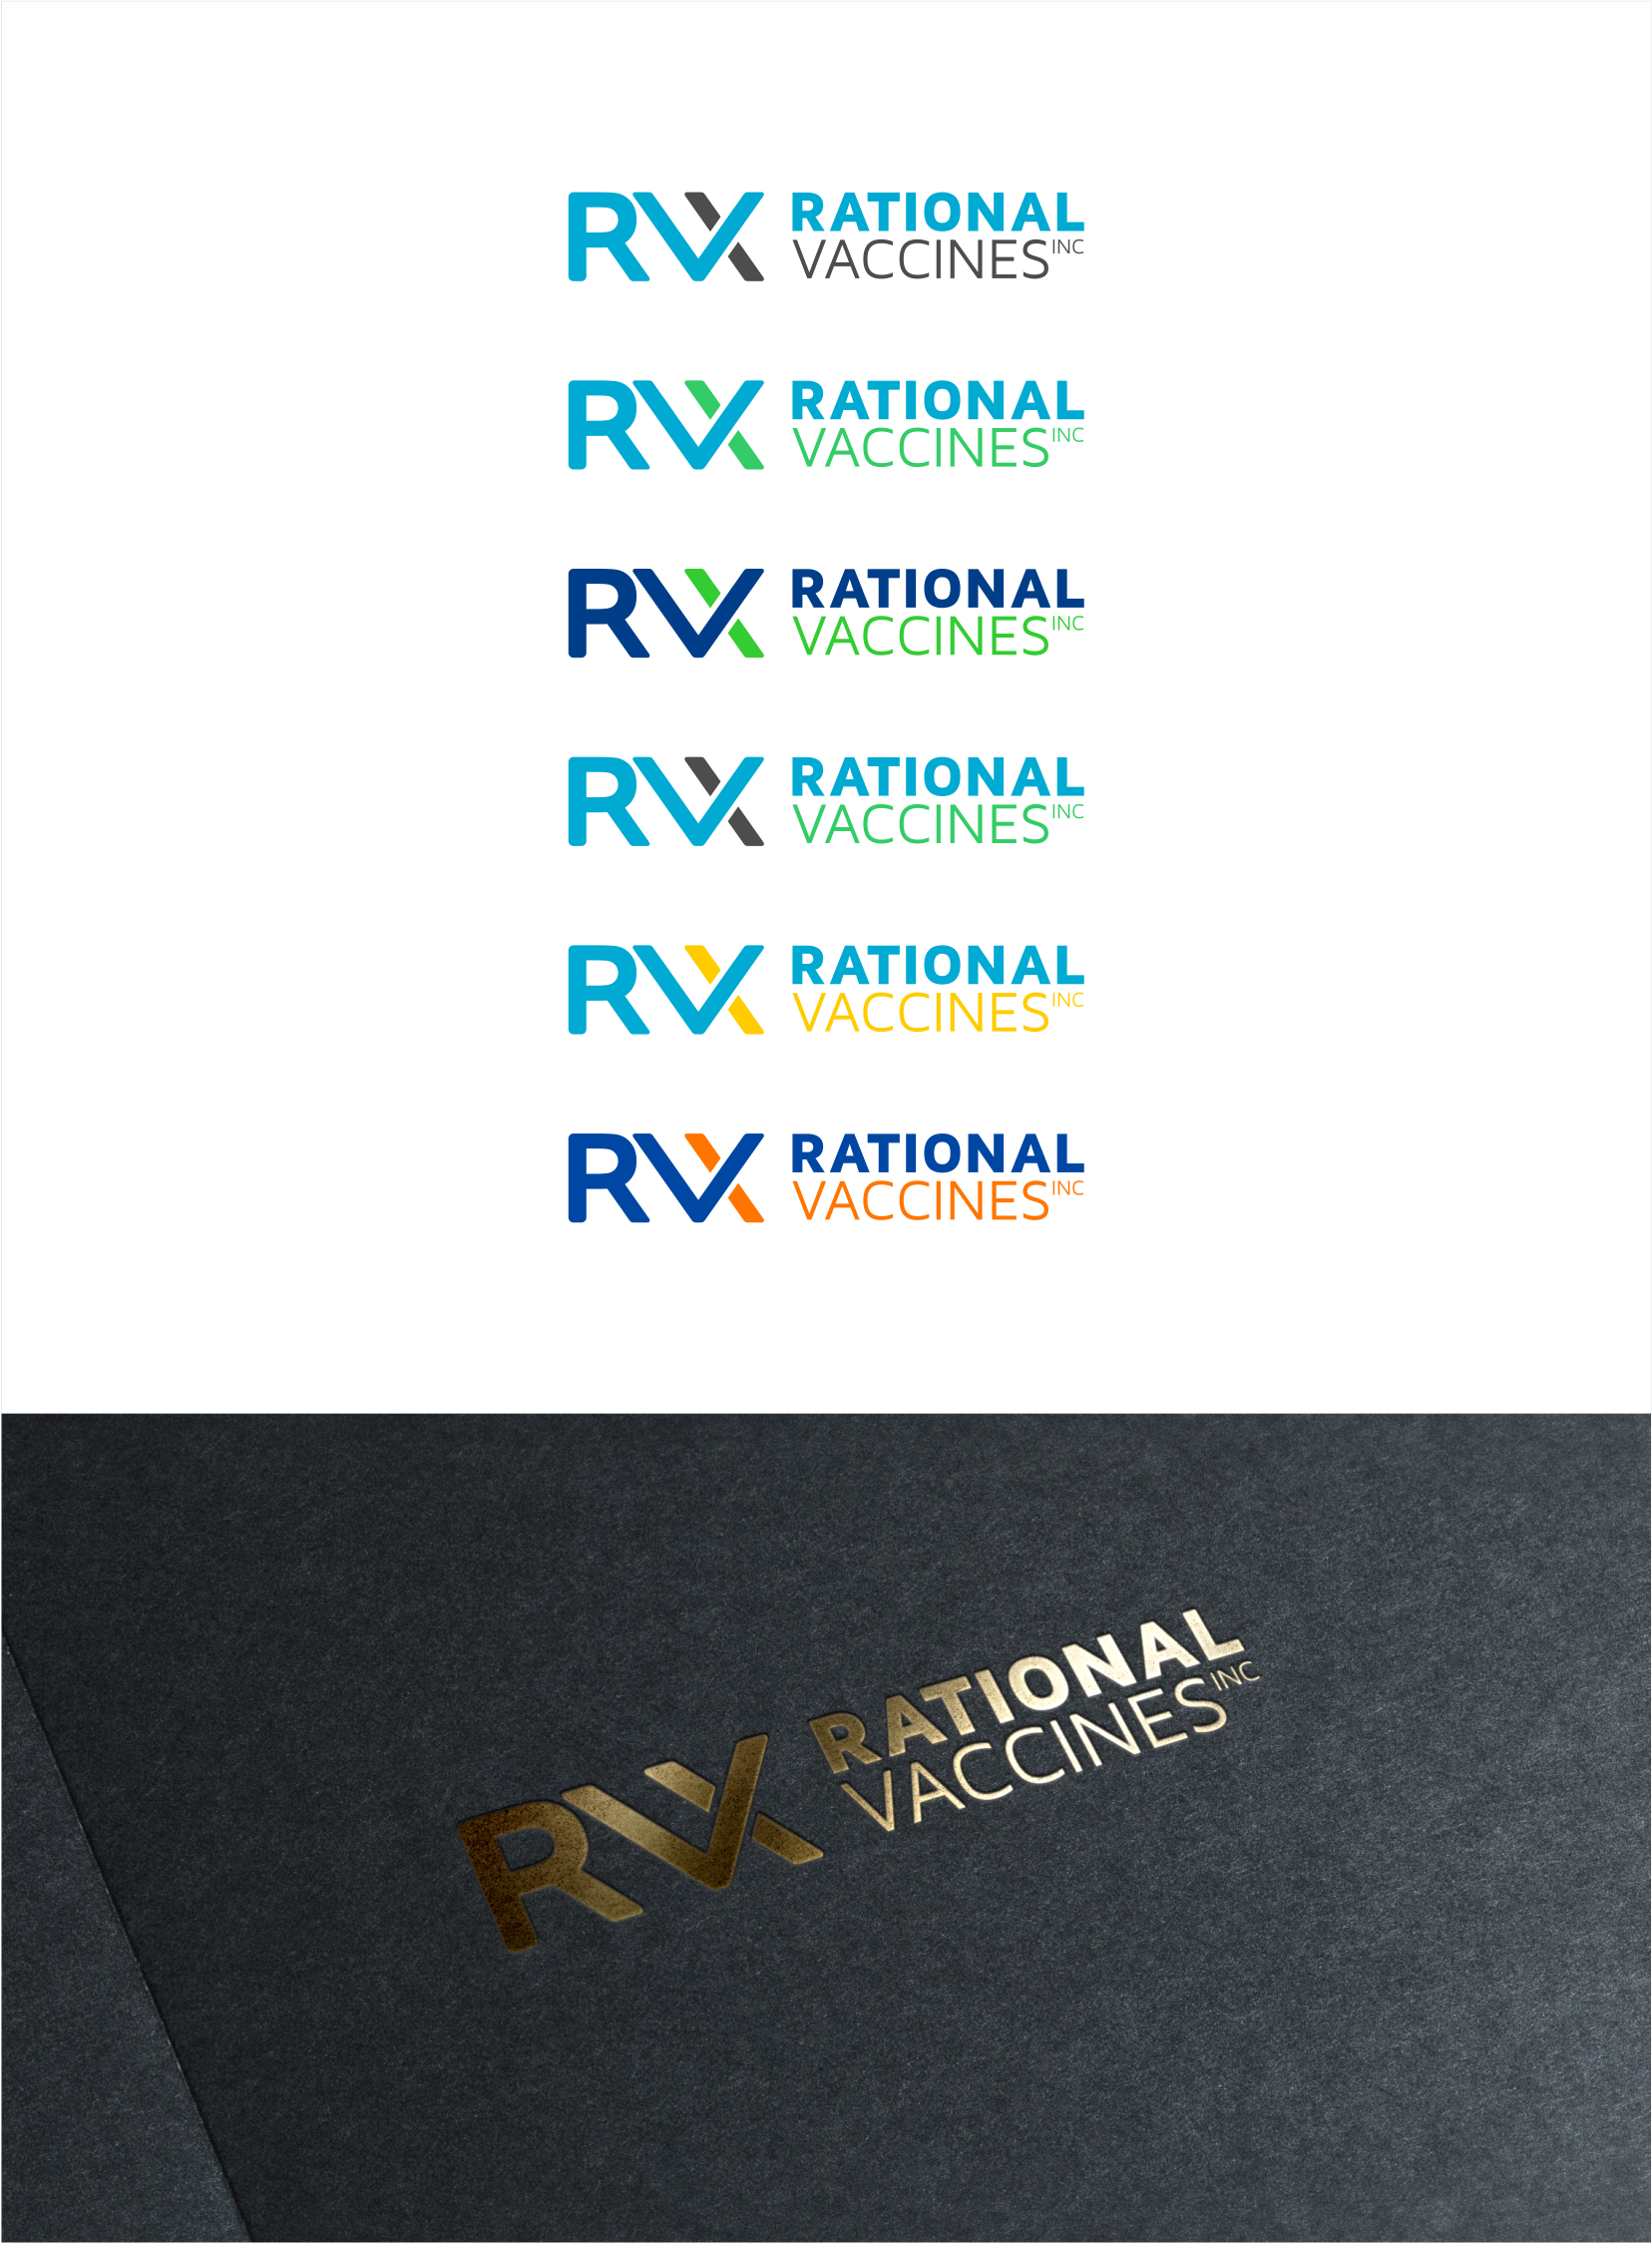 Rational Vaccines, Inc. (Curing Infectious Disease)